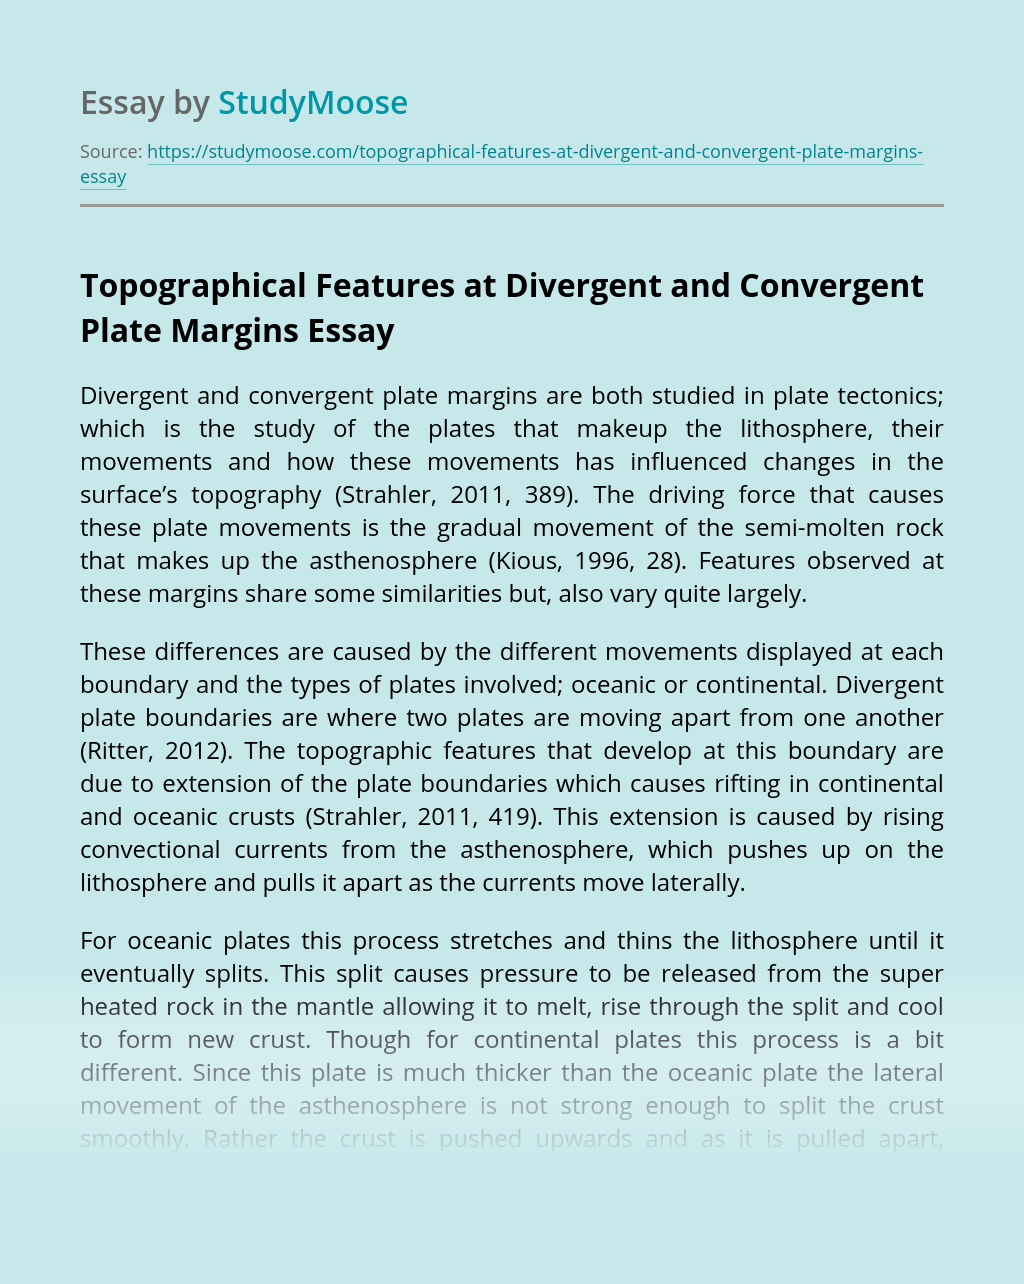 Topographical Features at Divergent and Convergent Plate Margins